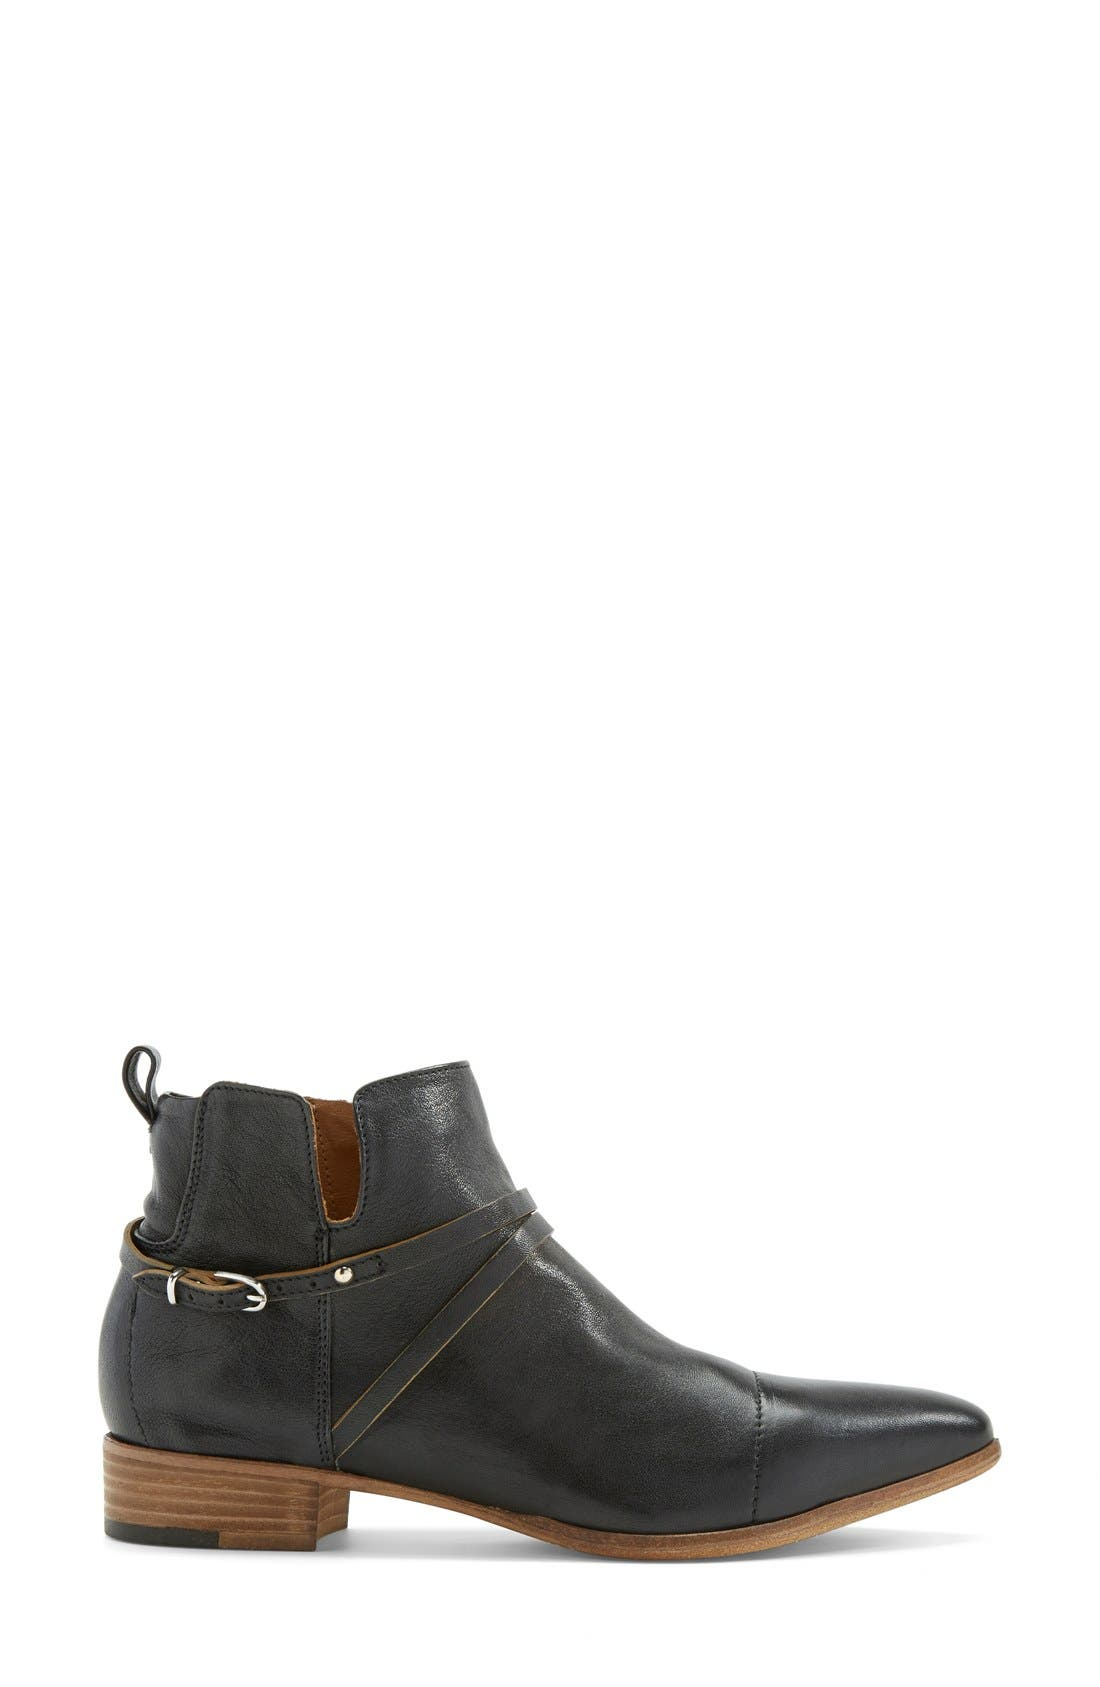 'Mea' Ankle Boot,                             Alternate thumbnail 20, color,